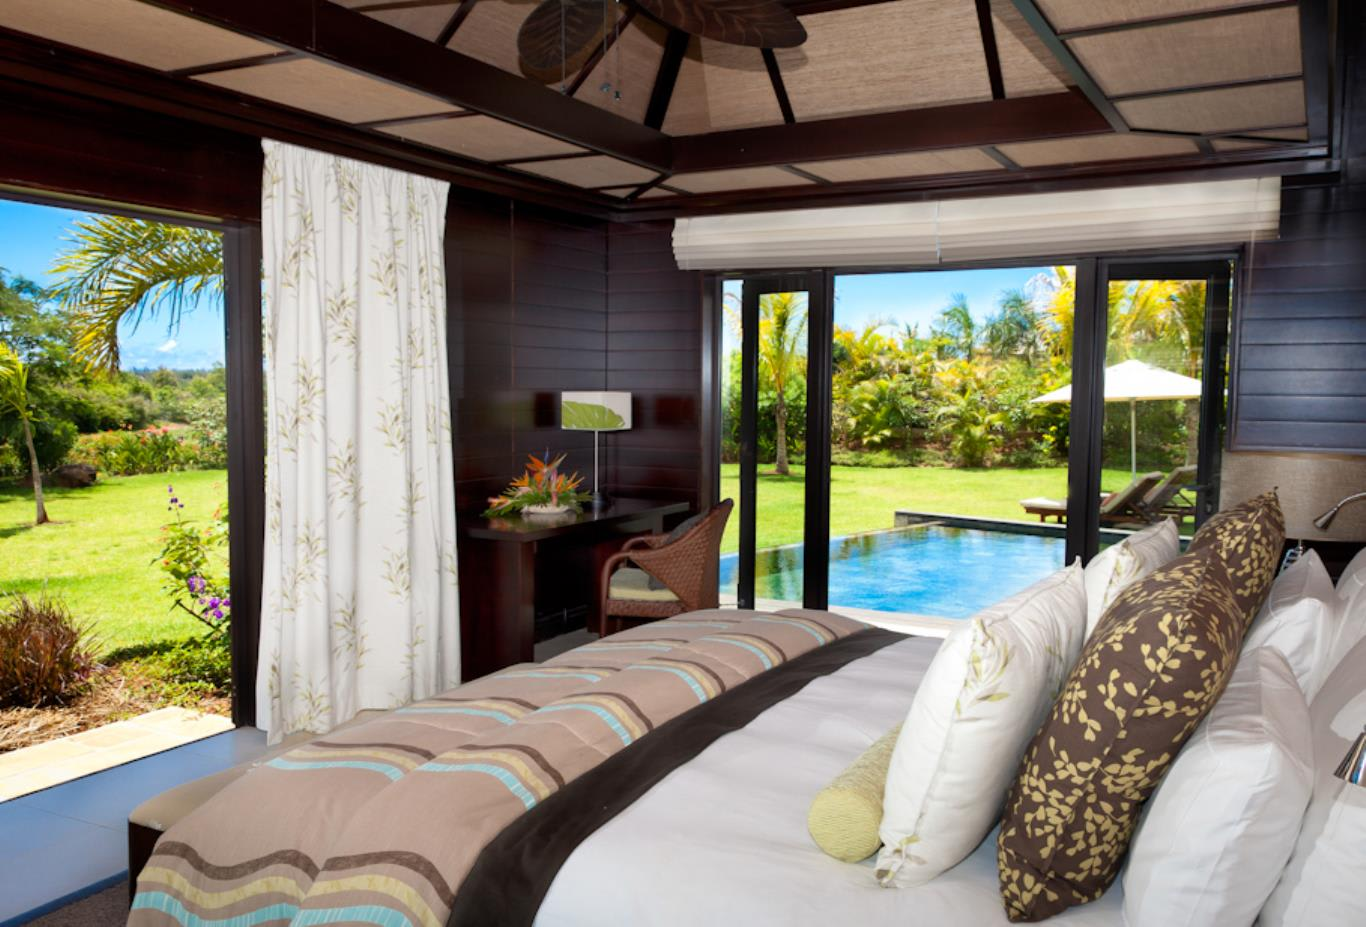 Prestige Villa showing views from bedroom